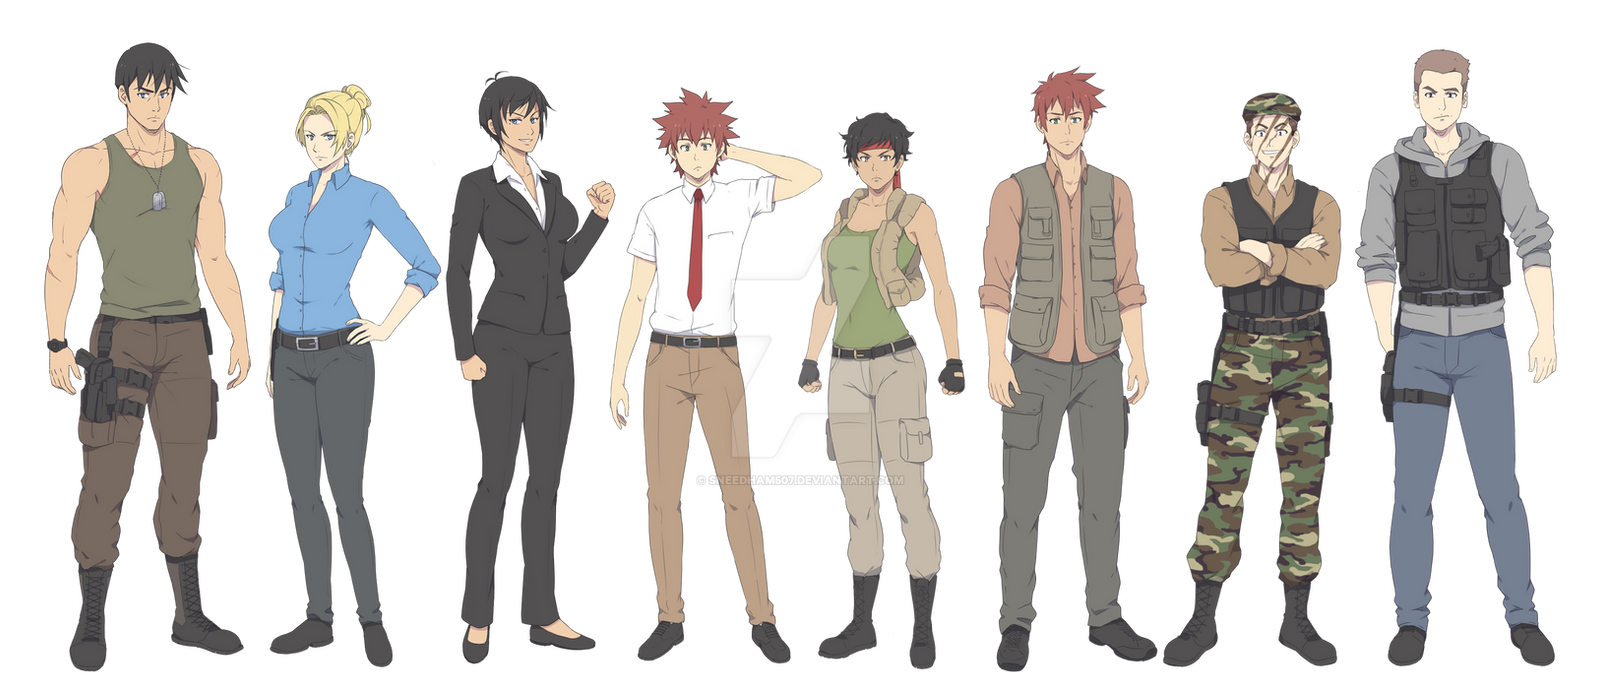 Z Ignition Anime Characters : Ignition crisis main characters by sneedham on deviantart